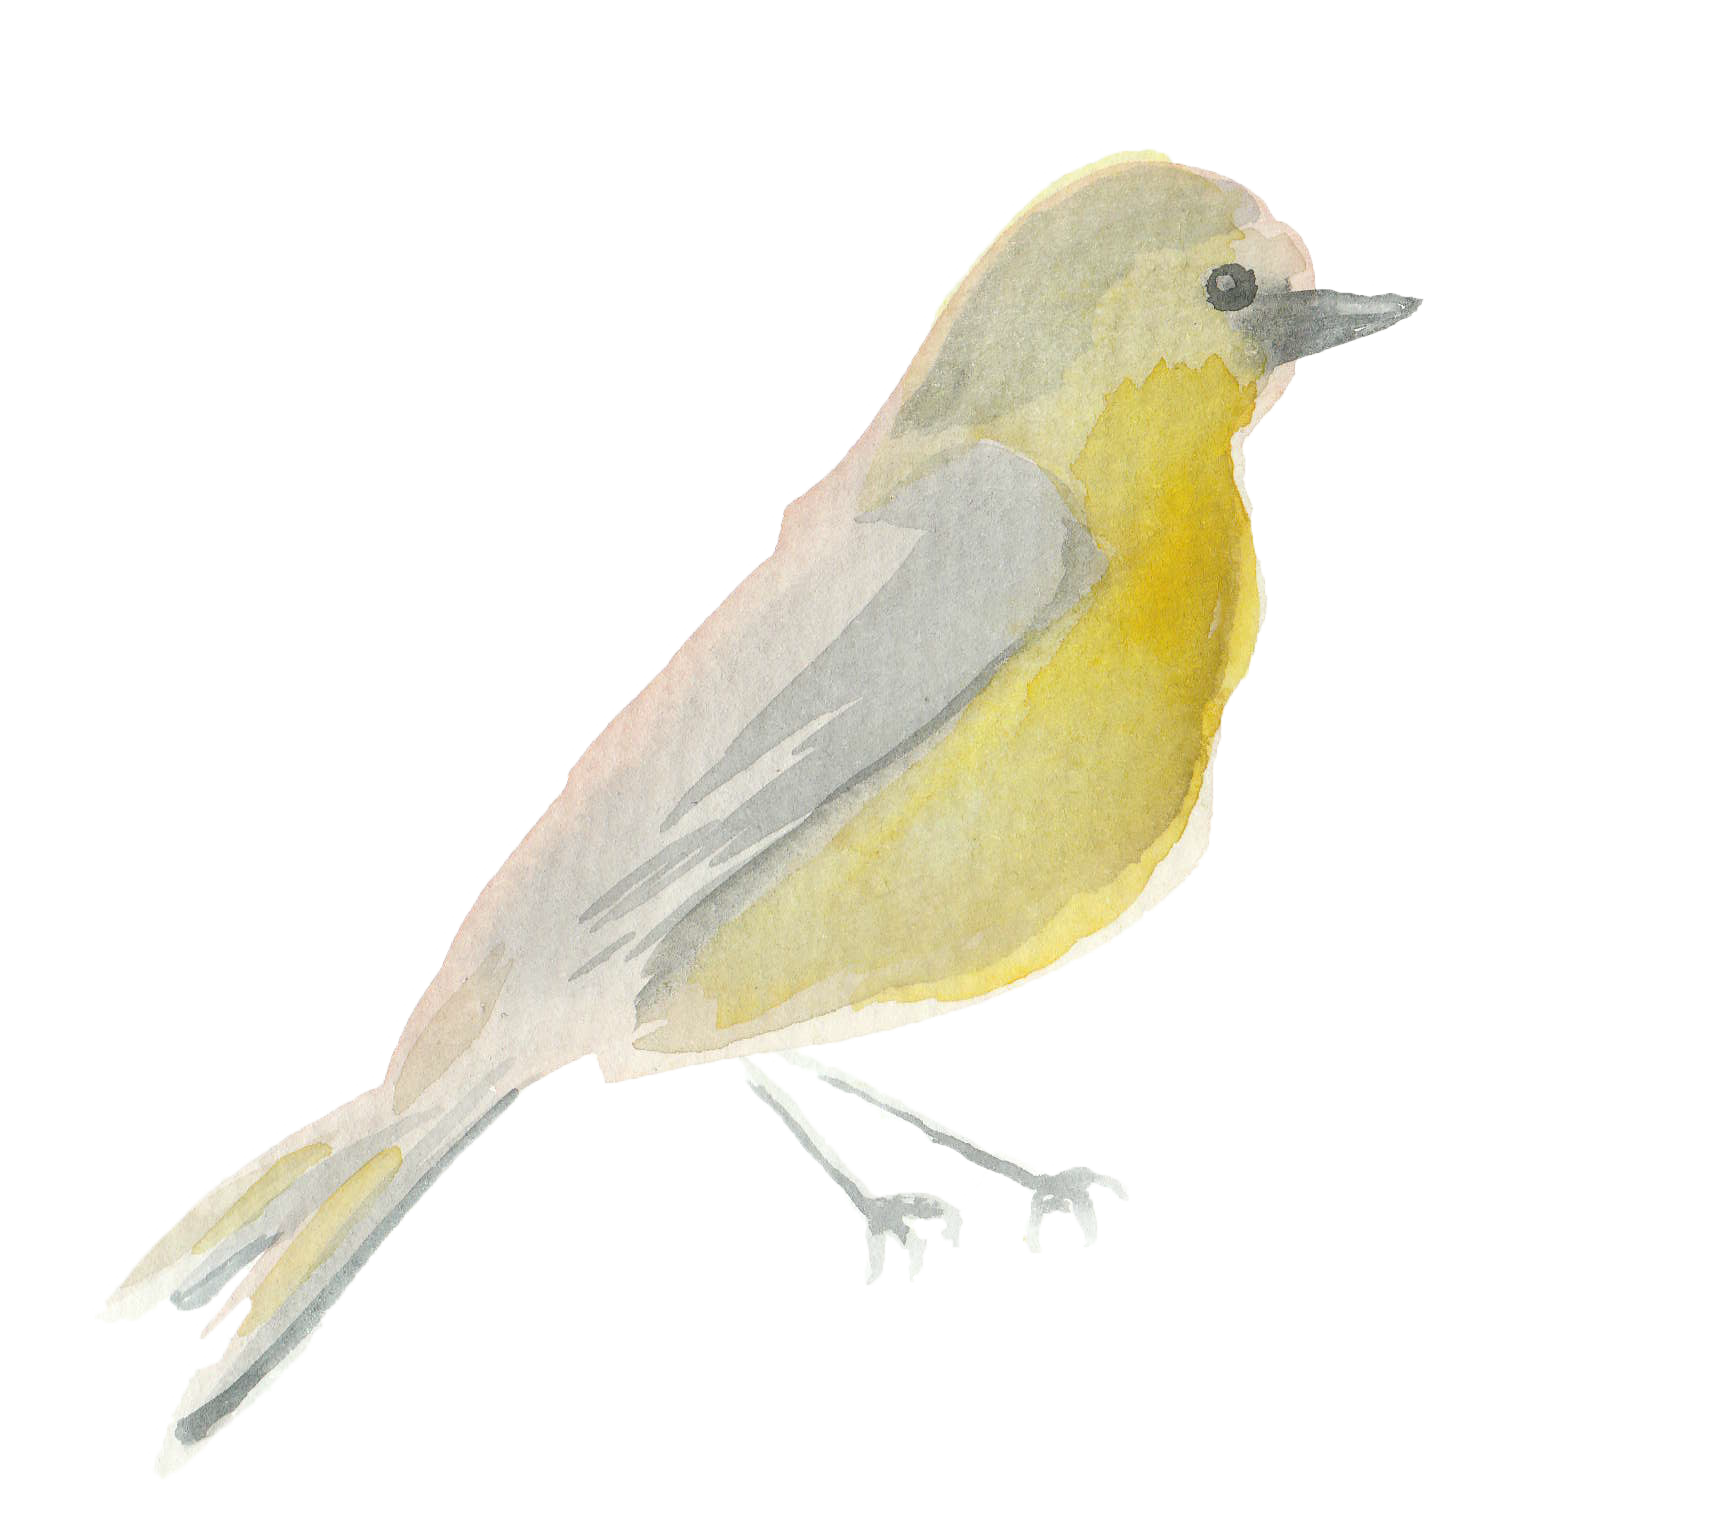 Water color bird png. Olivia bennett spring watercolor